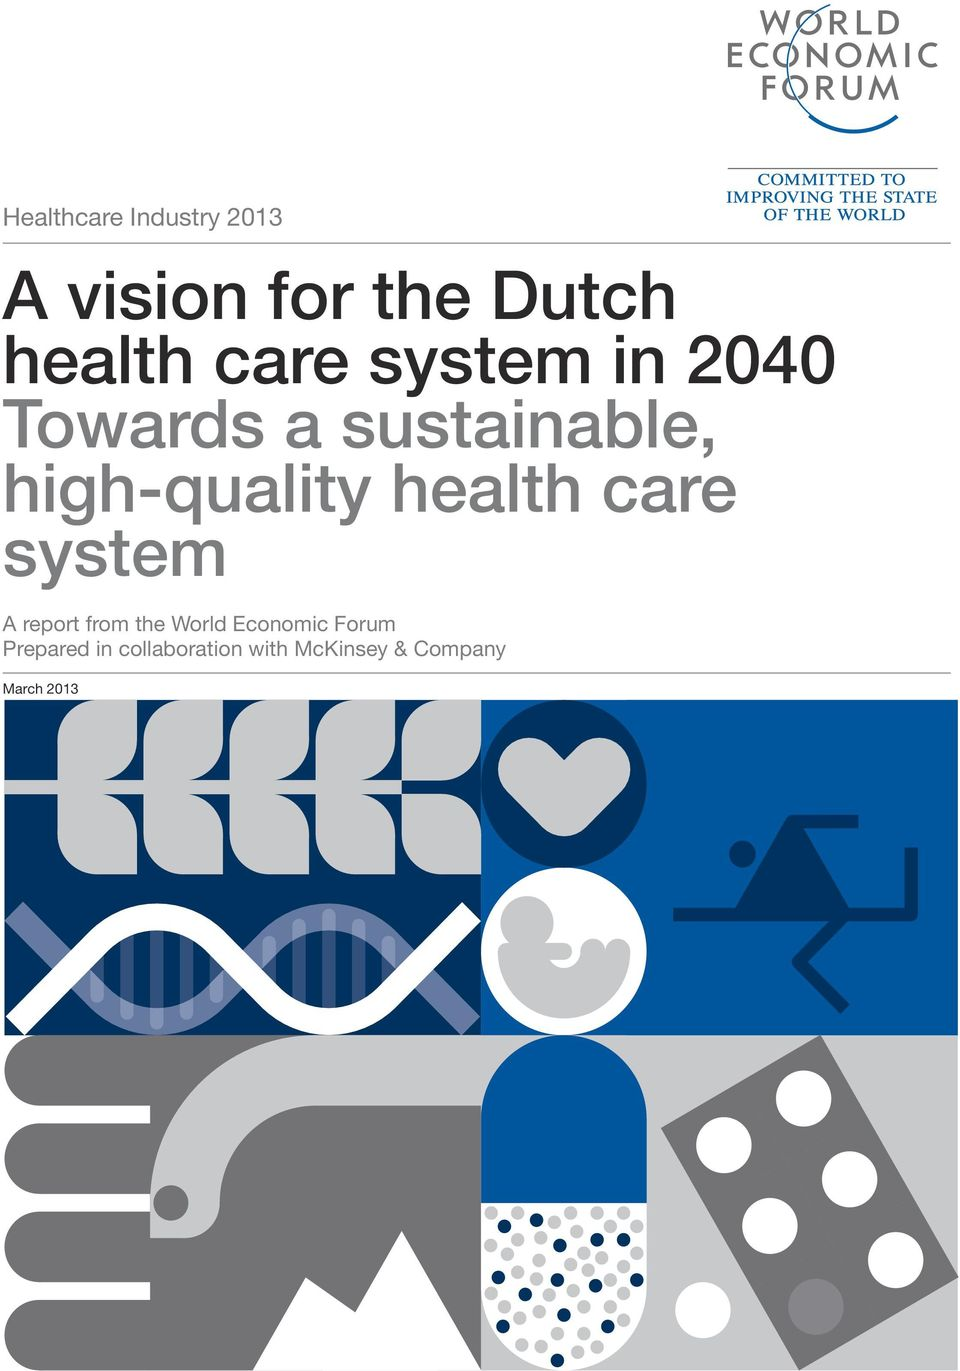 health care system A report from the World Economic Forum